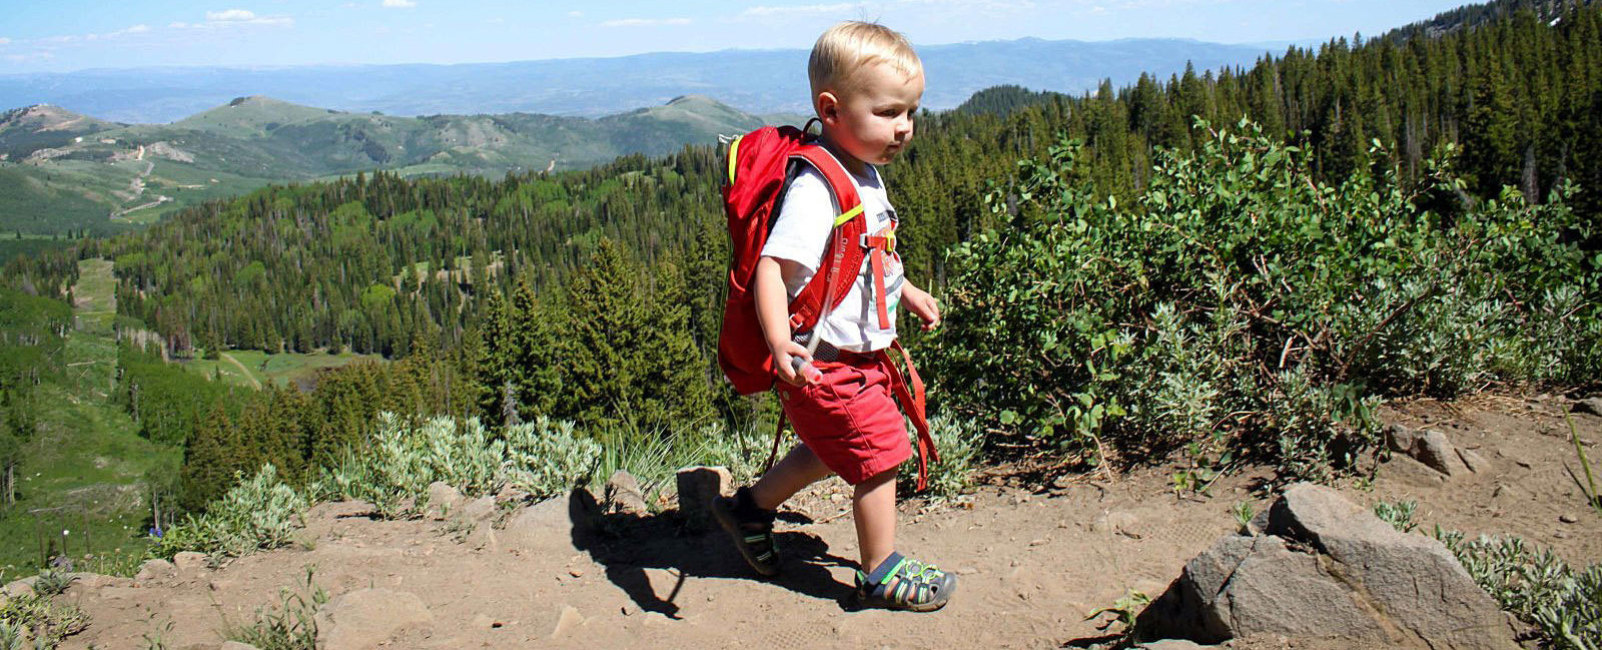 5 Hikes to Help your Toddler Love Hiking